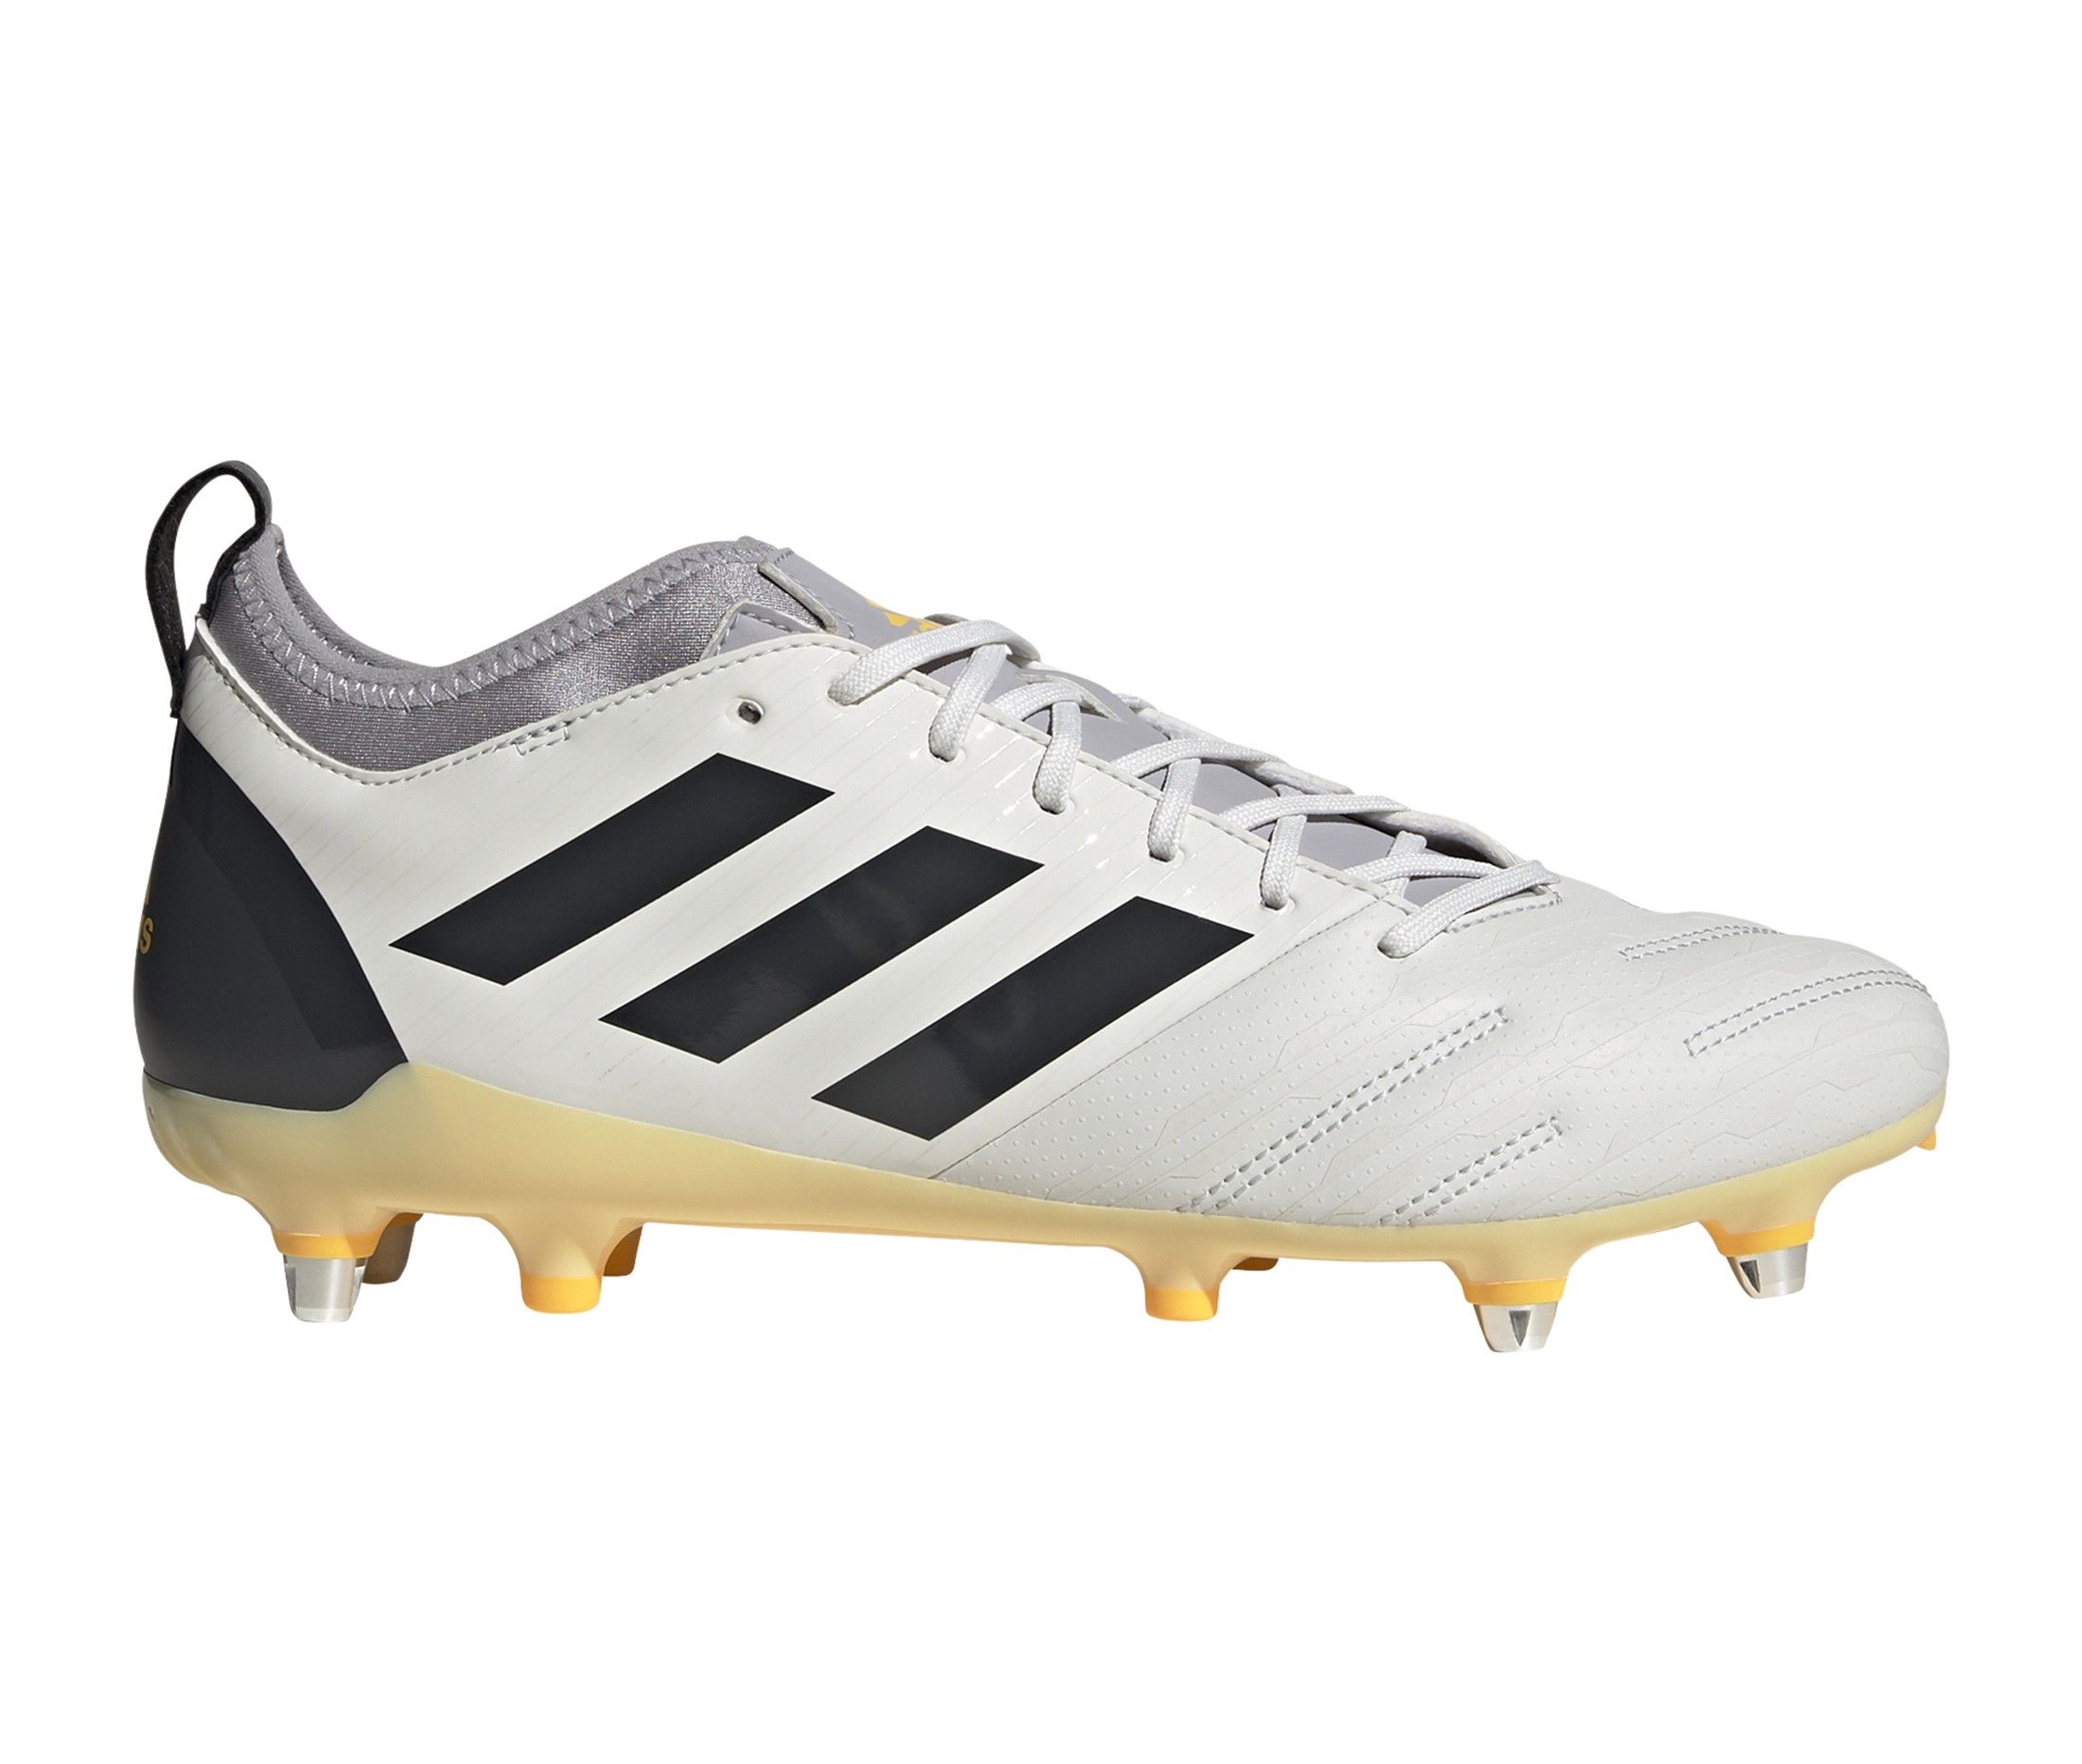 chaussures de rugby adidas | chaussures de rugby | Rugbyshop